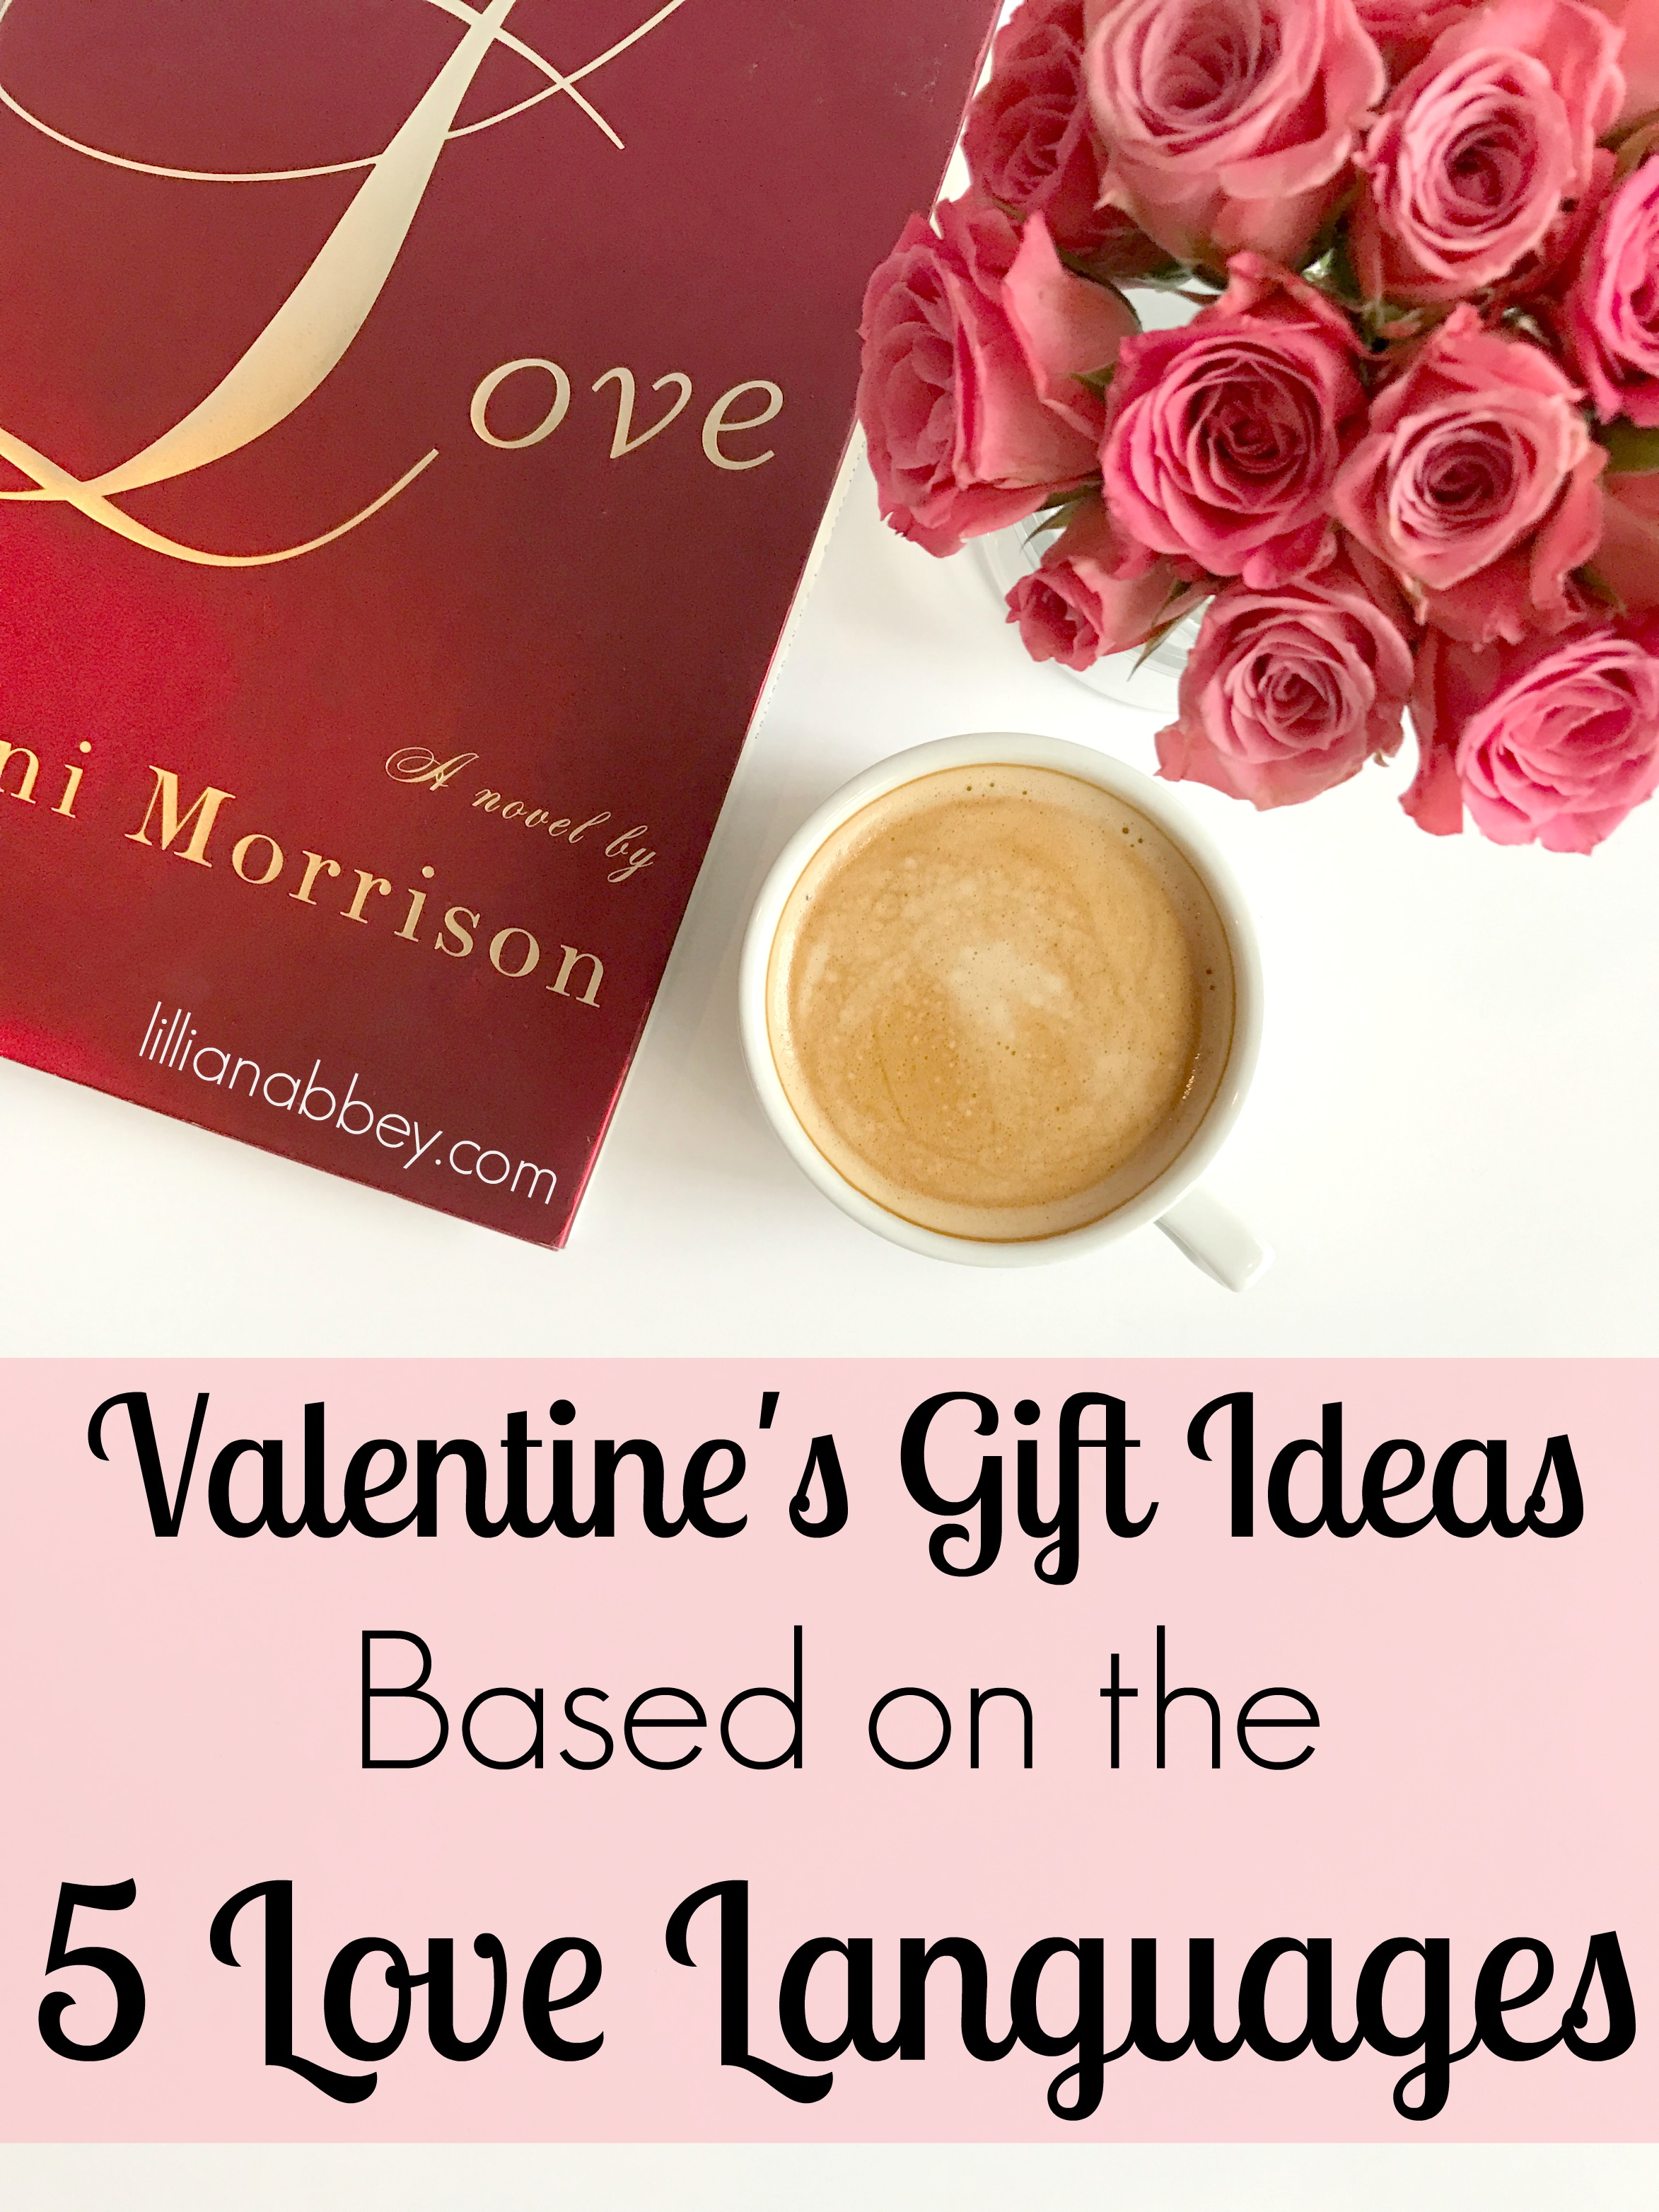 Valentine's Gifts Based on the 5 Love Languages